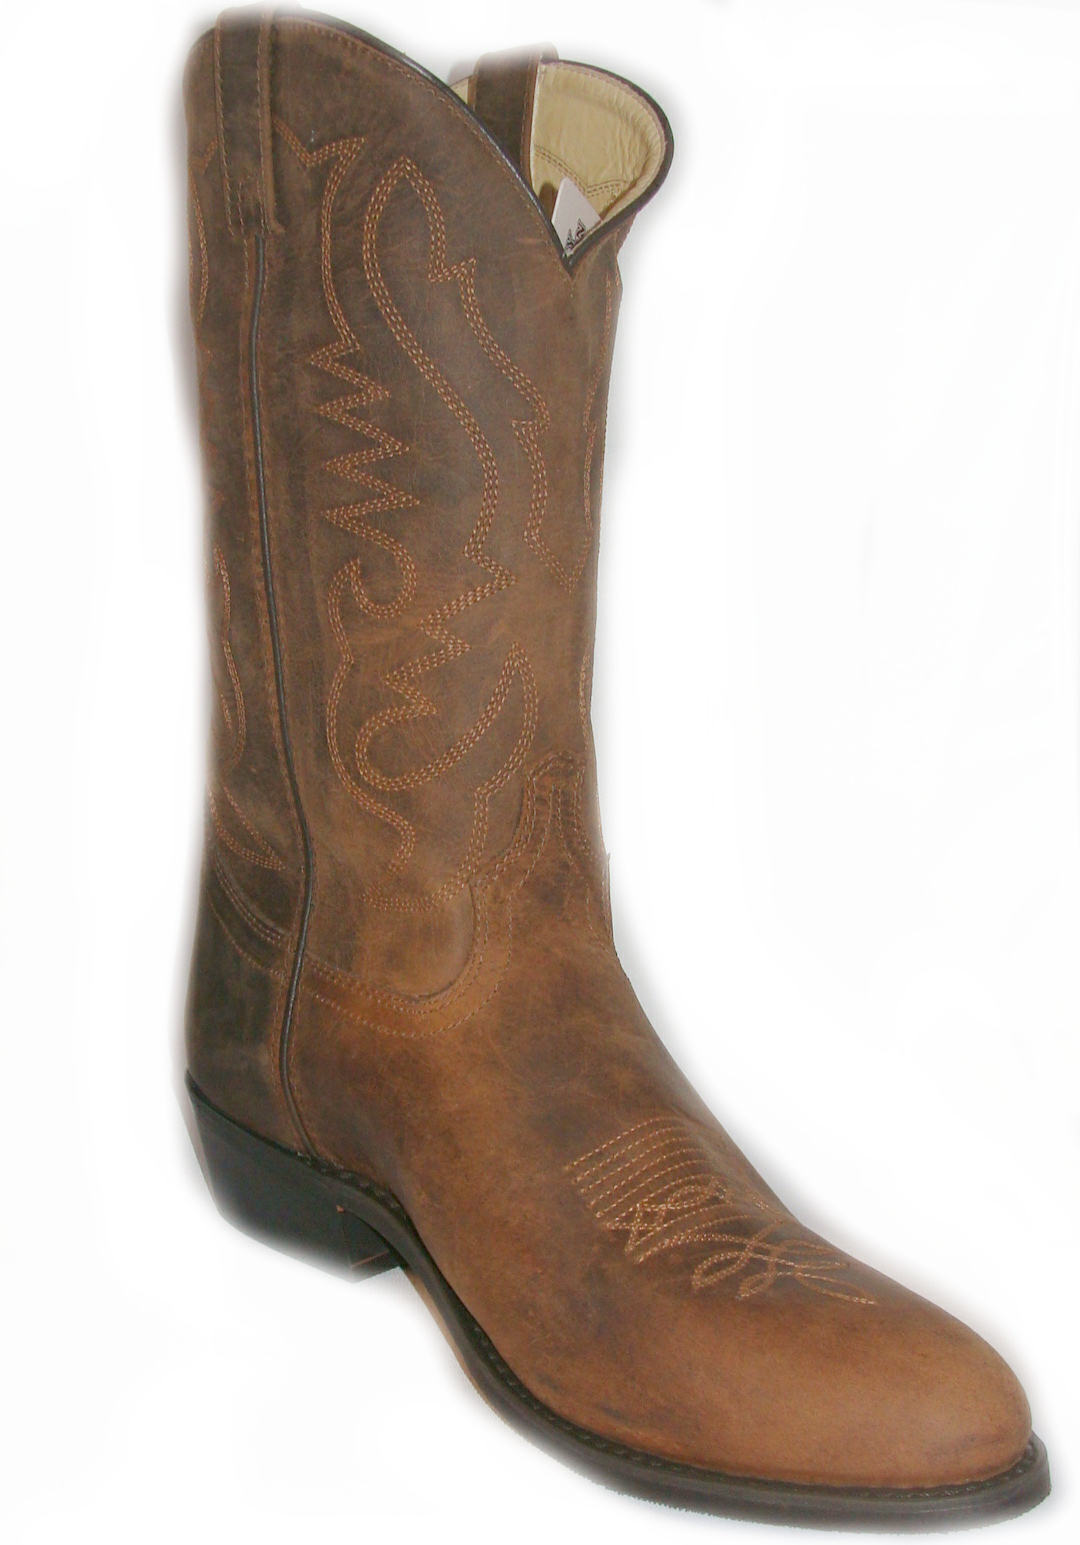 Leather Cowboy Boots - Cr Boot